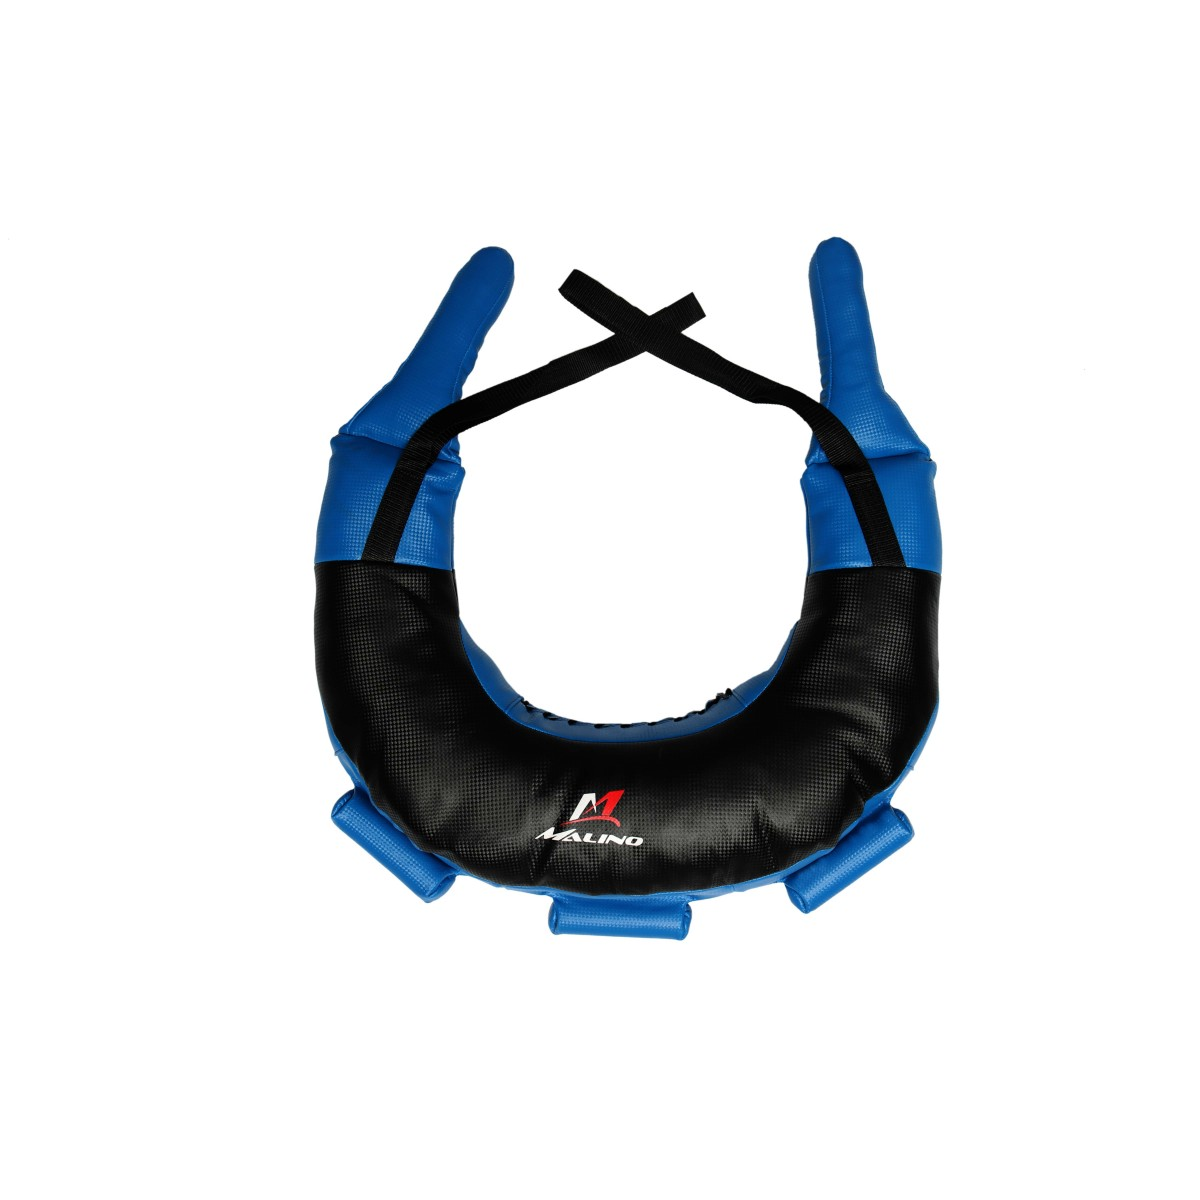 Malino Professional 10KG Bulgarian Bag Black and Blue